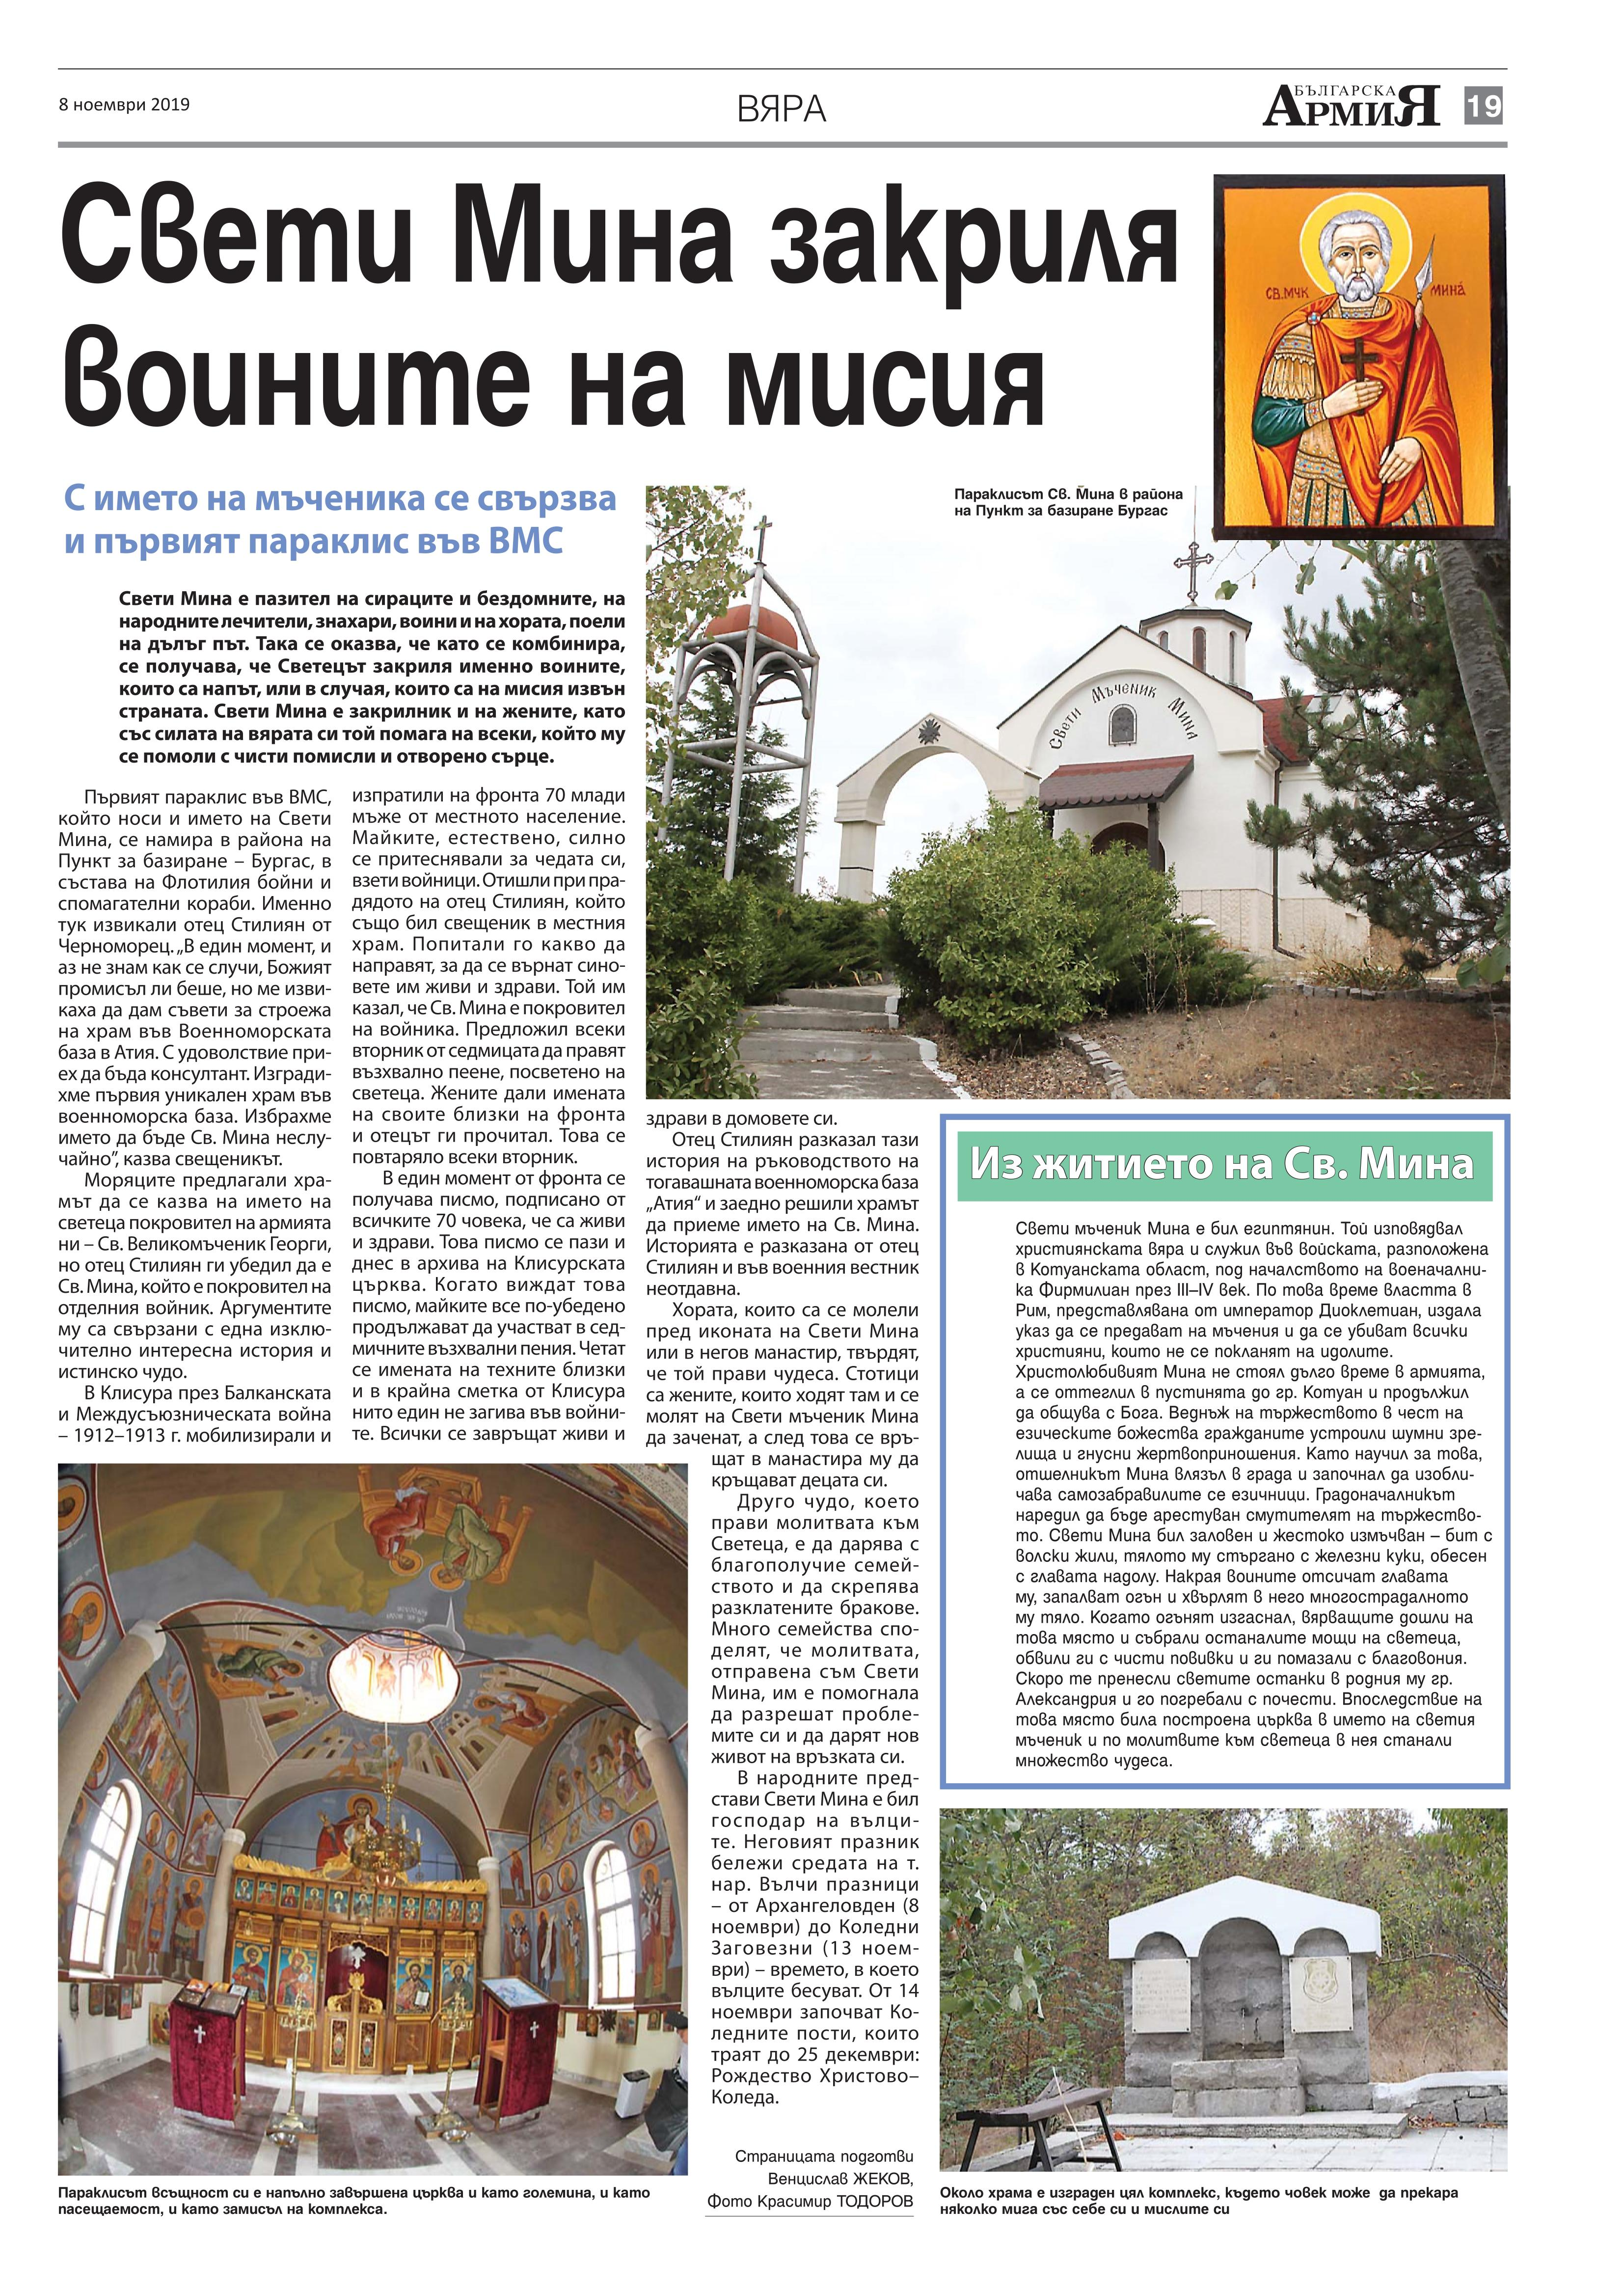 https://www.armymedia.bg/wp-content/uploads/2015/06/19.page1_-116.jpg